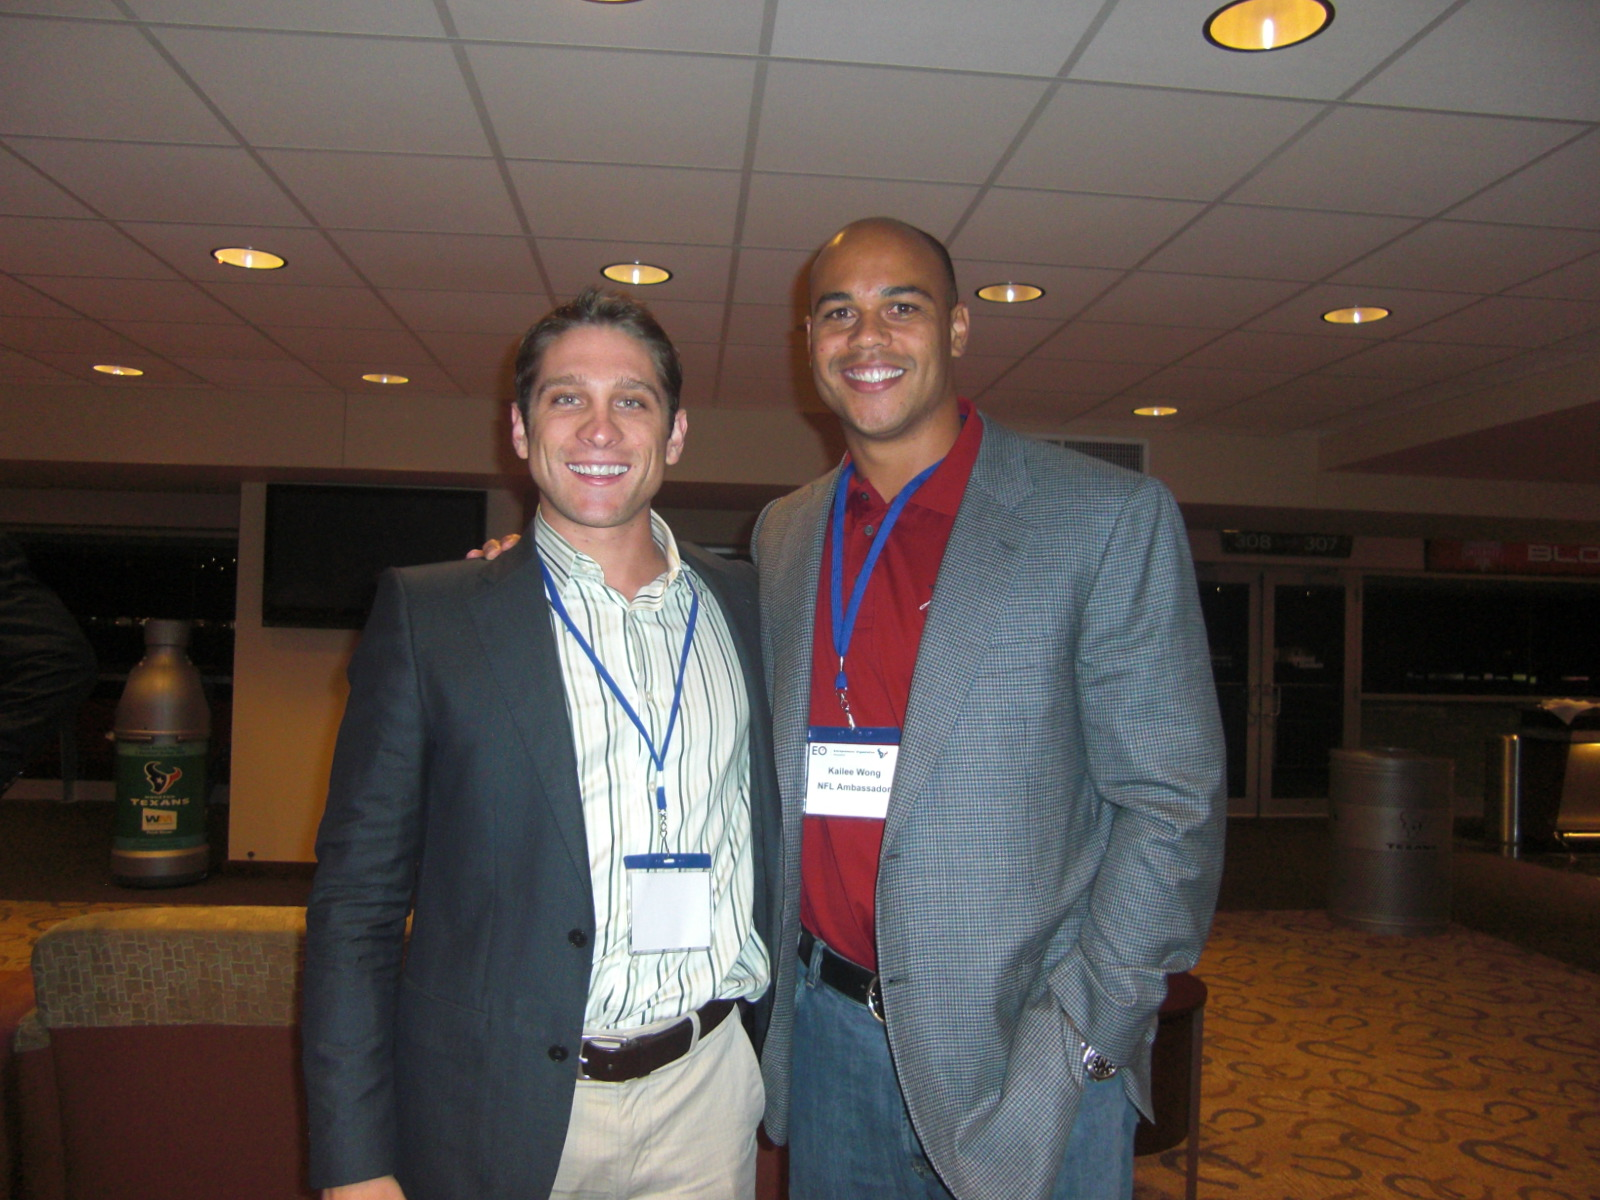 I chill with Kailee Wong, a retired player from the Vikings and Texans. He's always looking for his next business opportunity, so I steered him towards real estate (and MyHouseDeals.com, of course!).